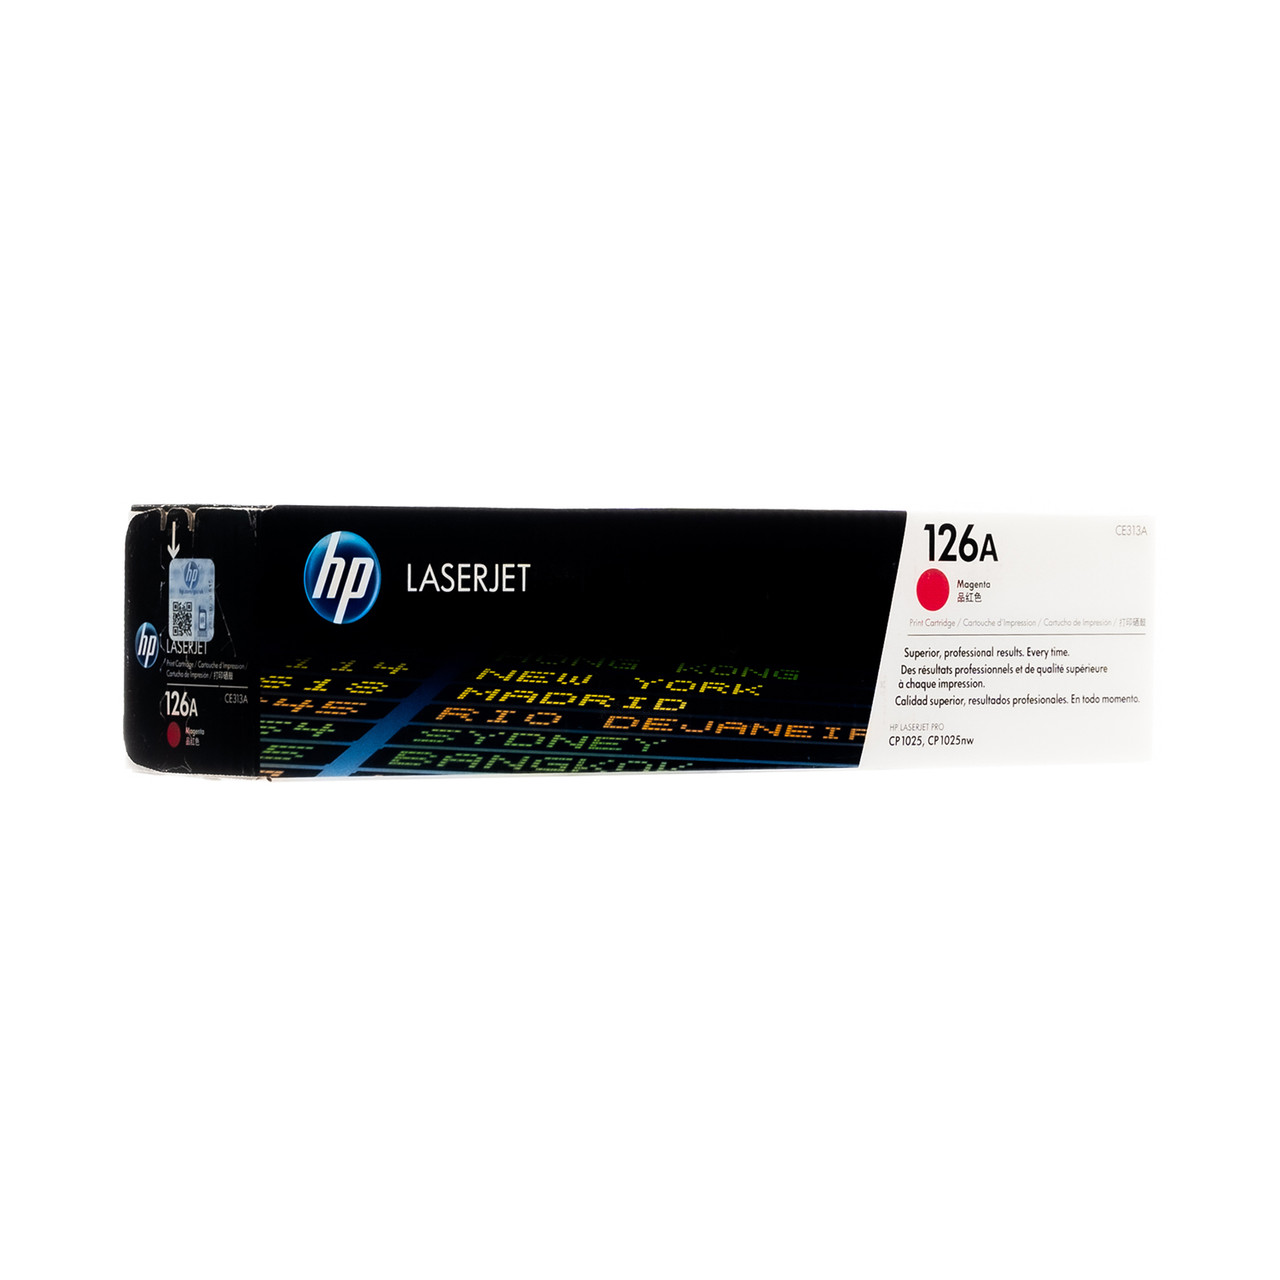 MAGENTA TONER CARTRIDGE FOR HP CE313A 126A COLOR LASERJET PRO CP1025NW CP1025